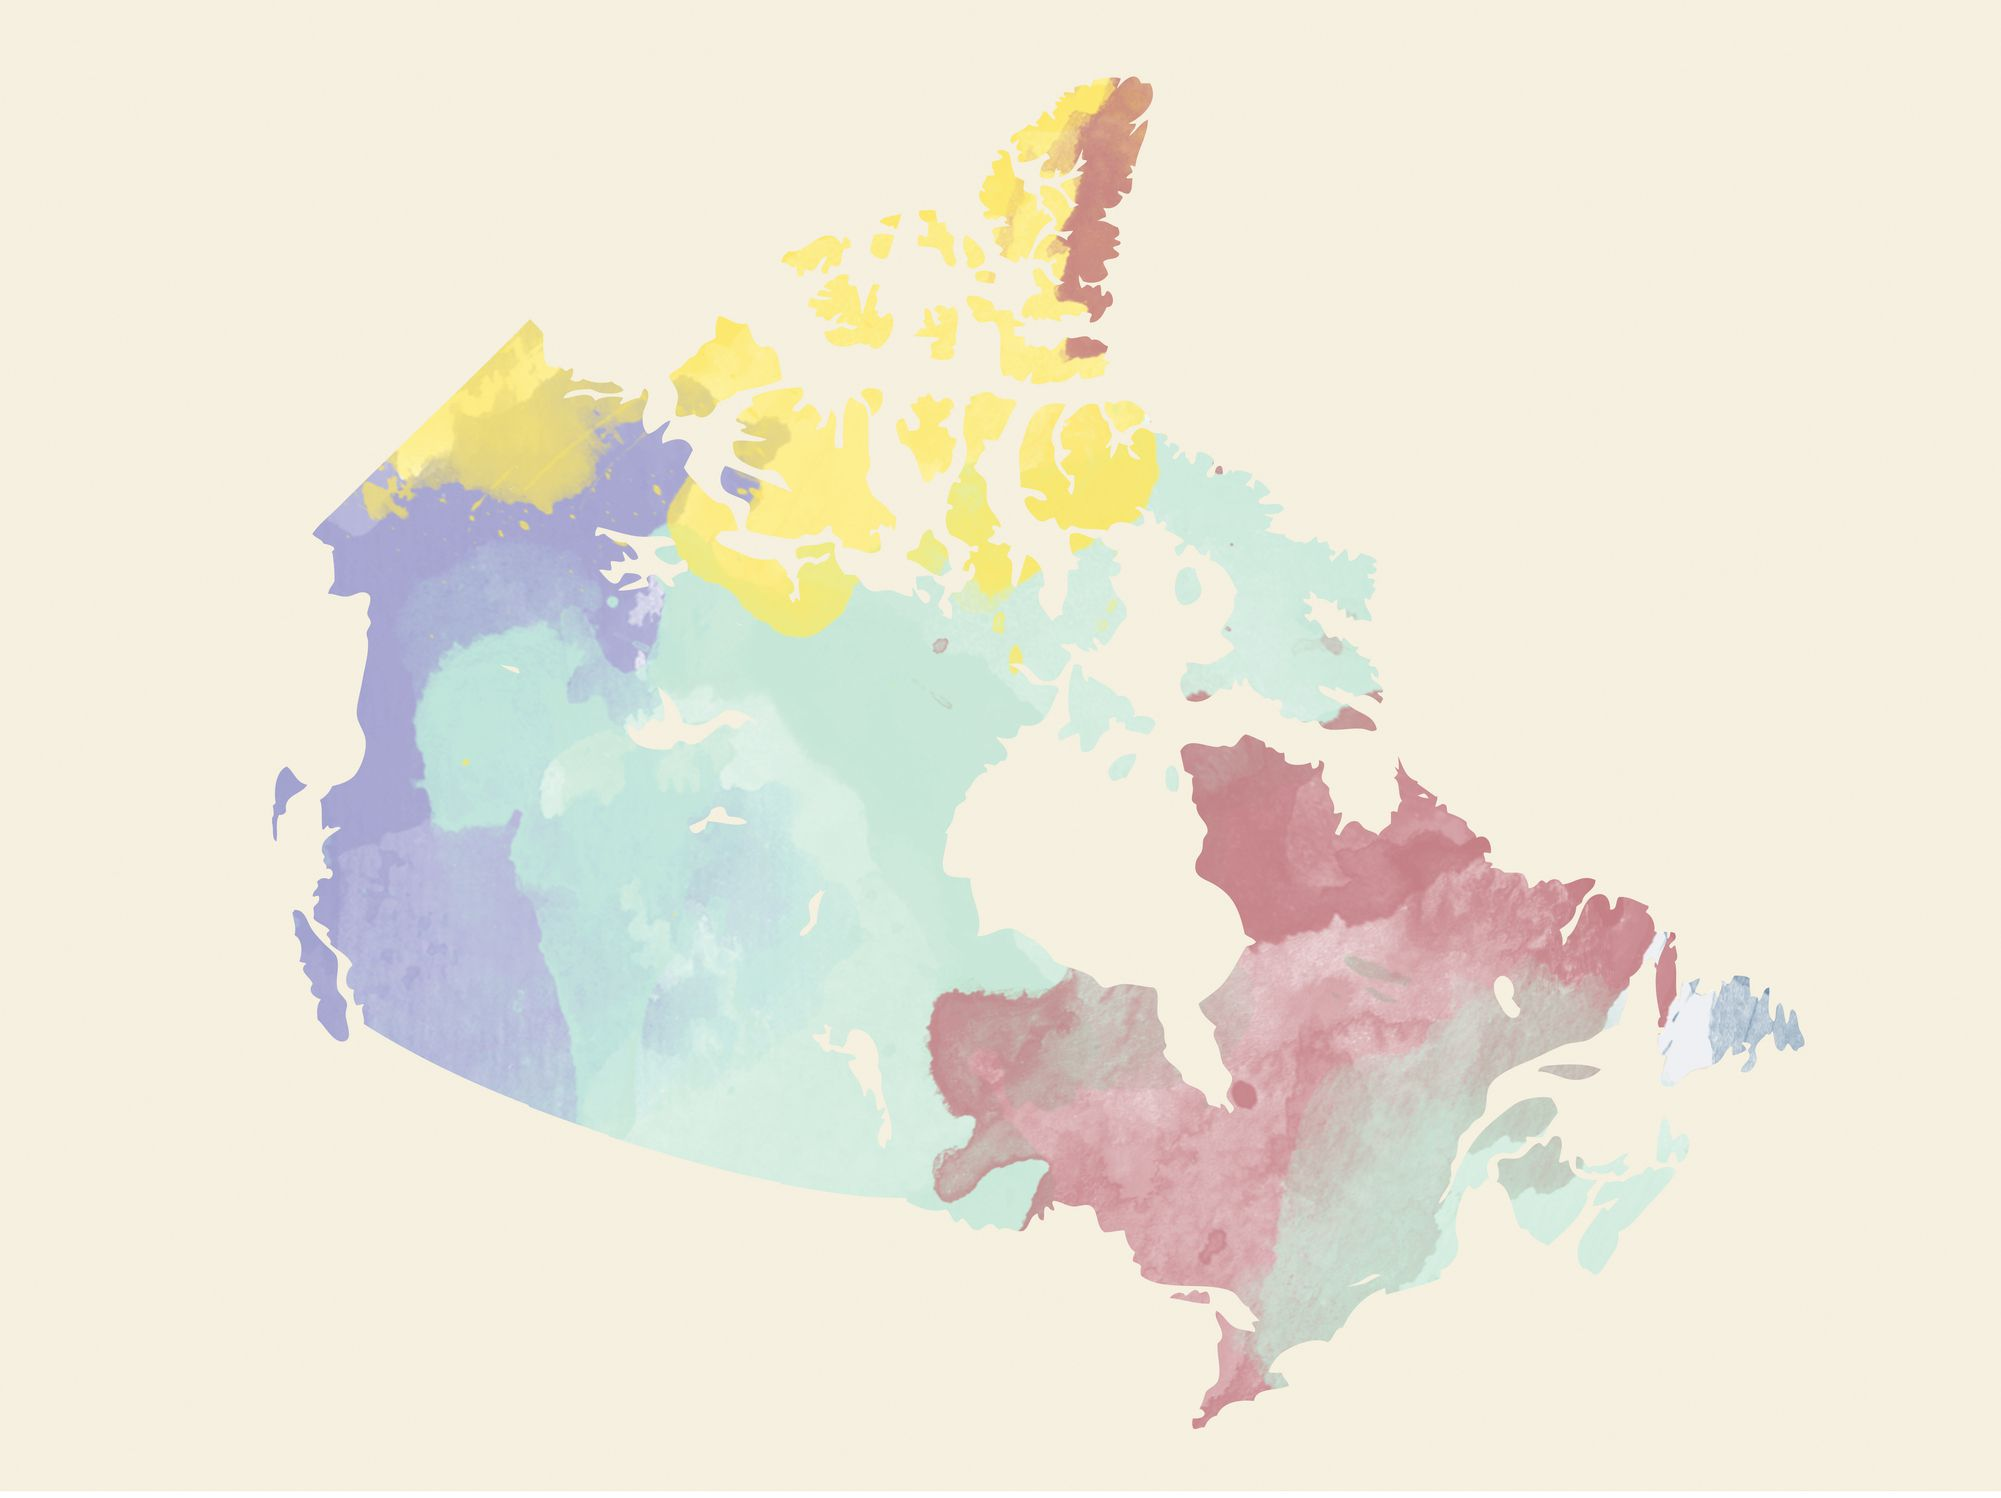 Key Facts About Canadas Provinces and Territories